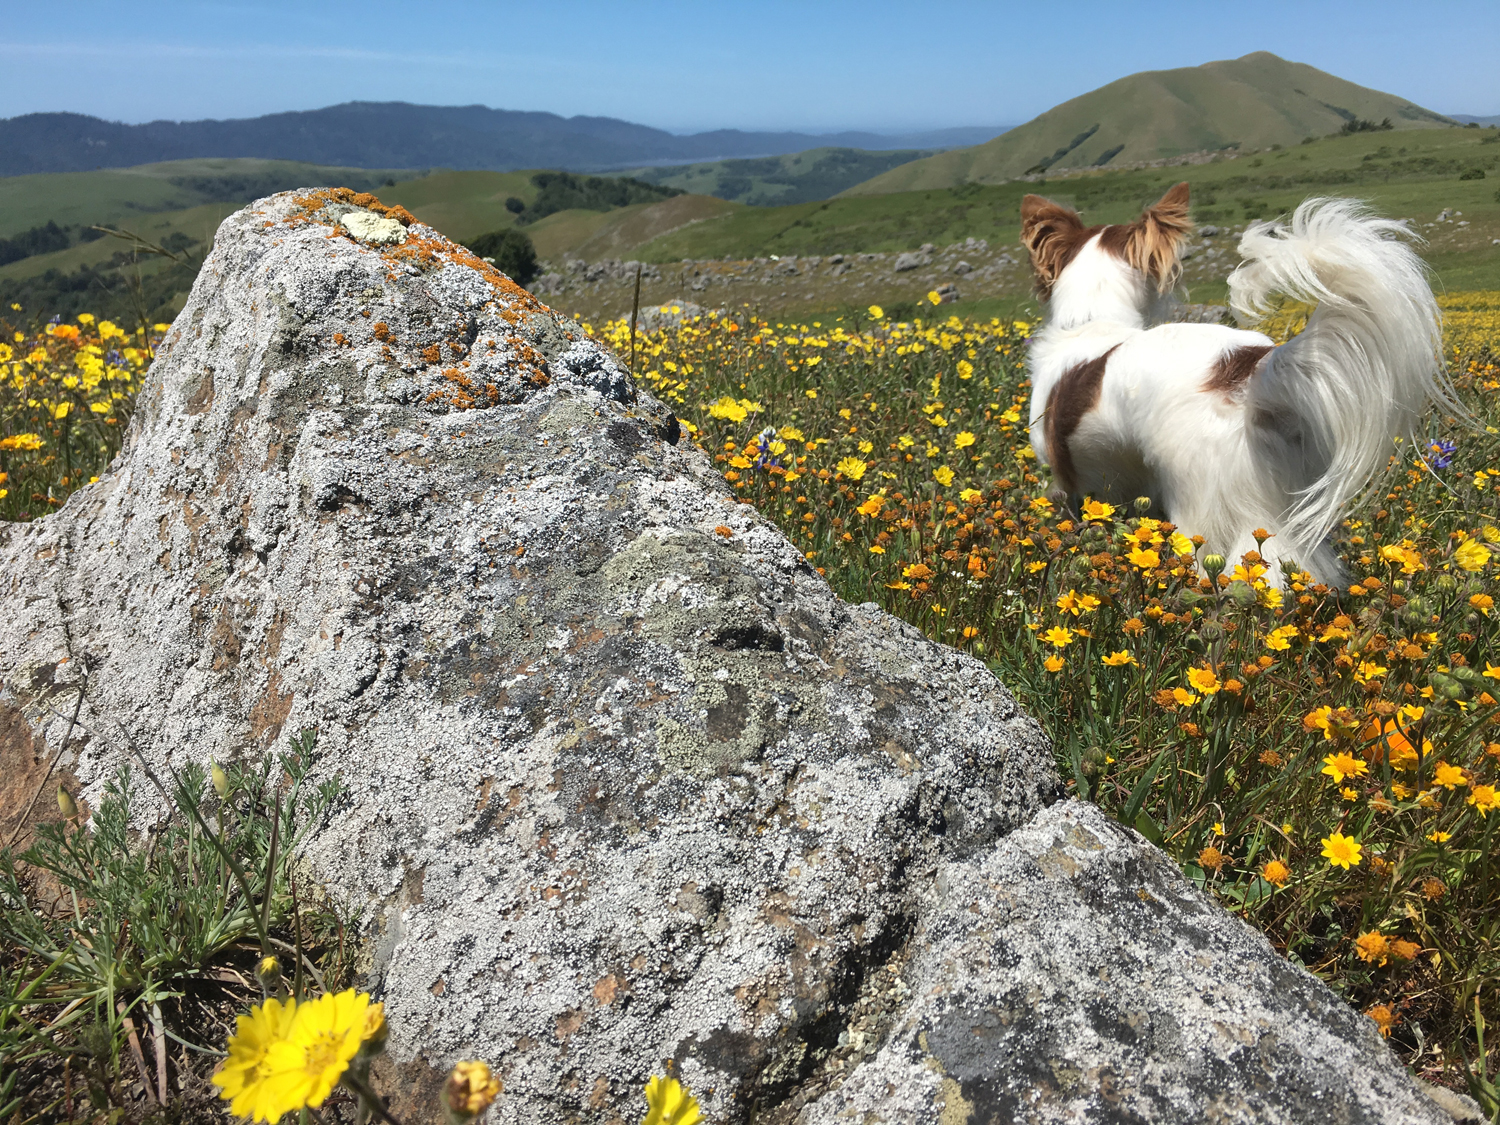 Point Reyes vista with dog, rock and poppies.